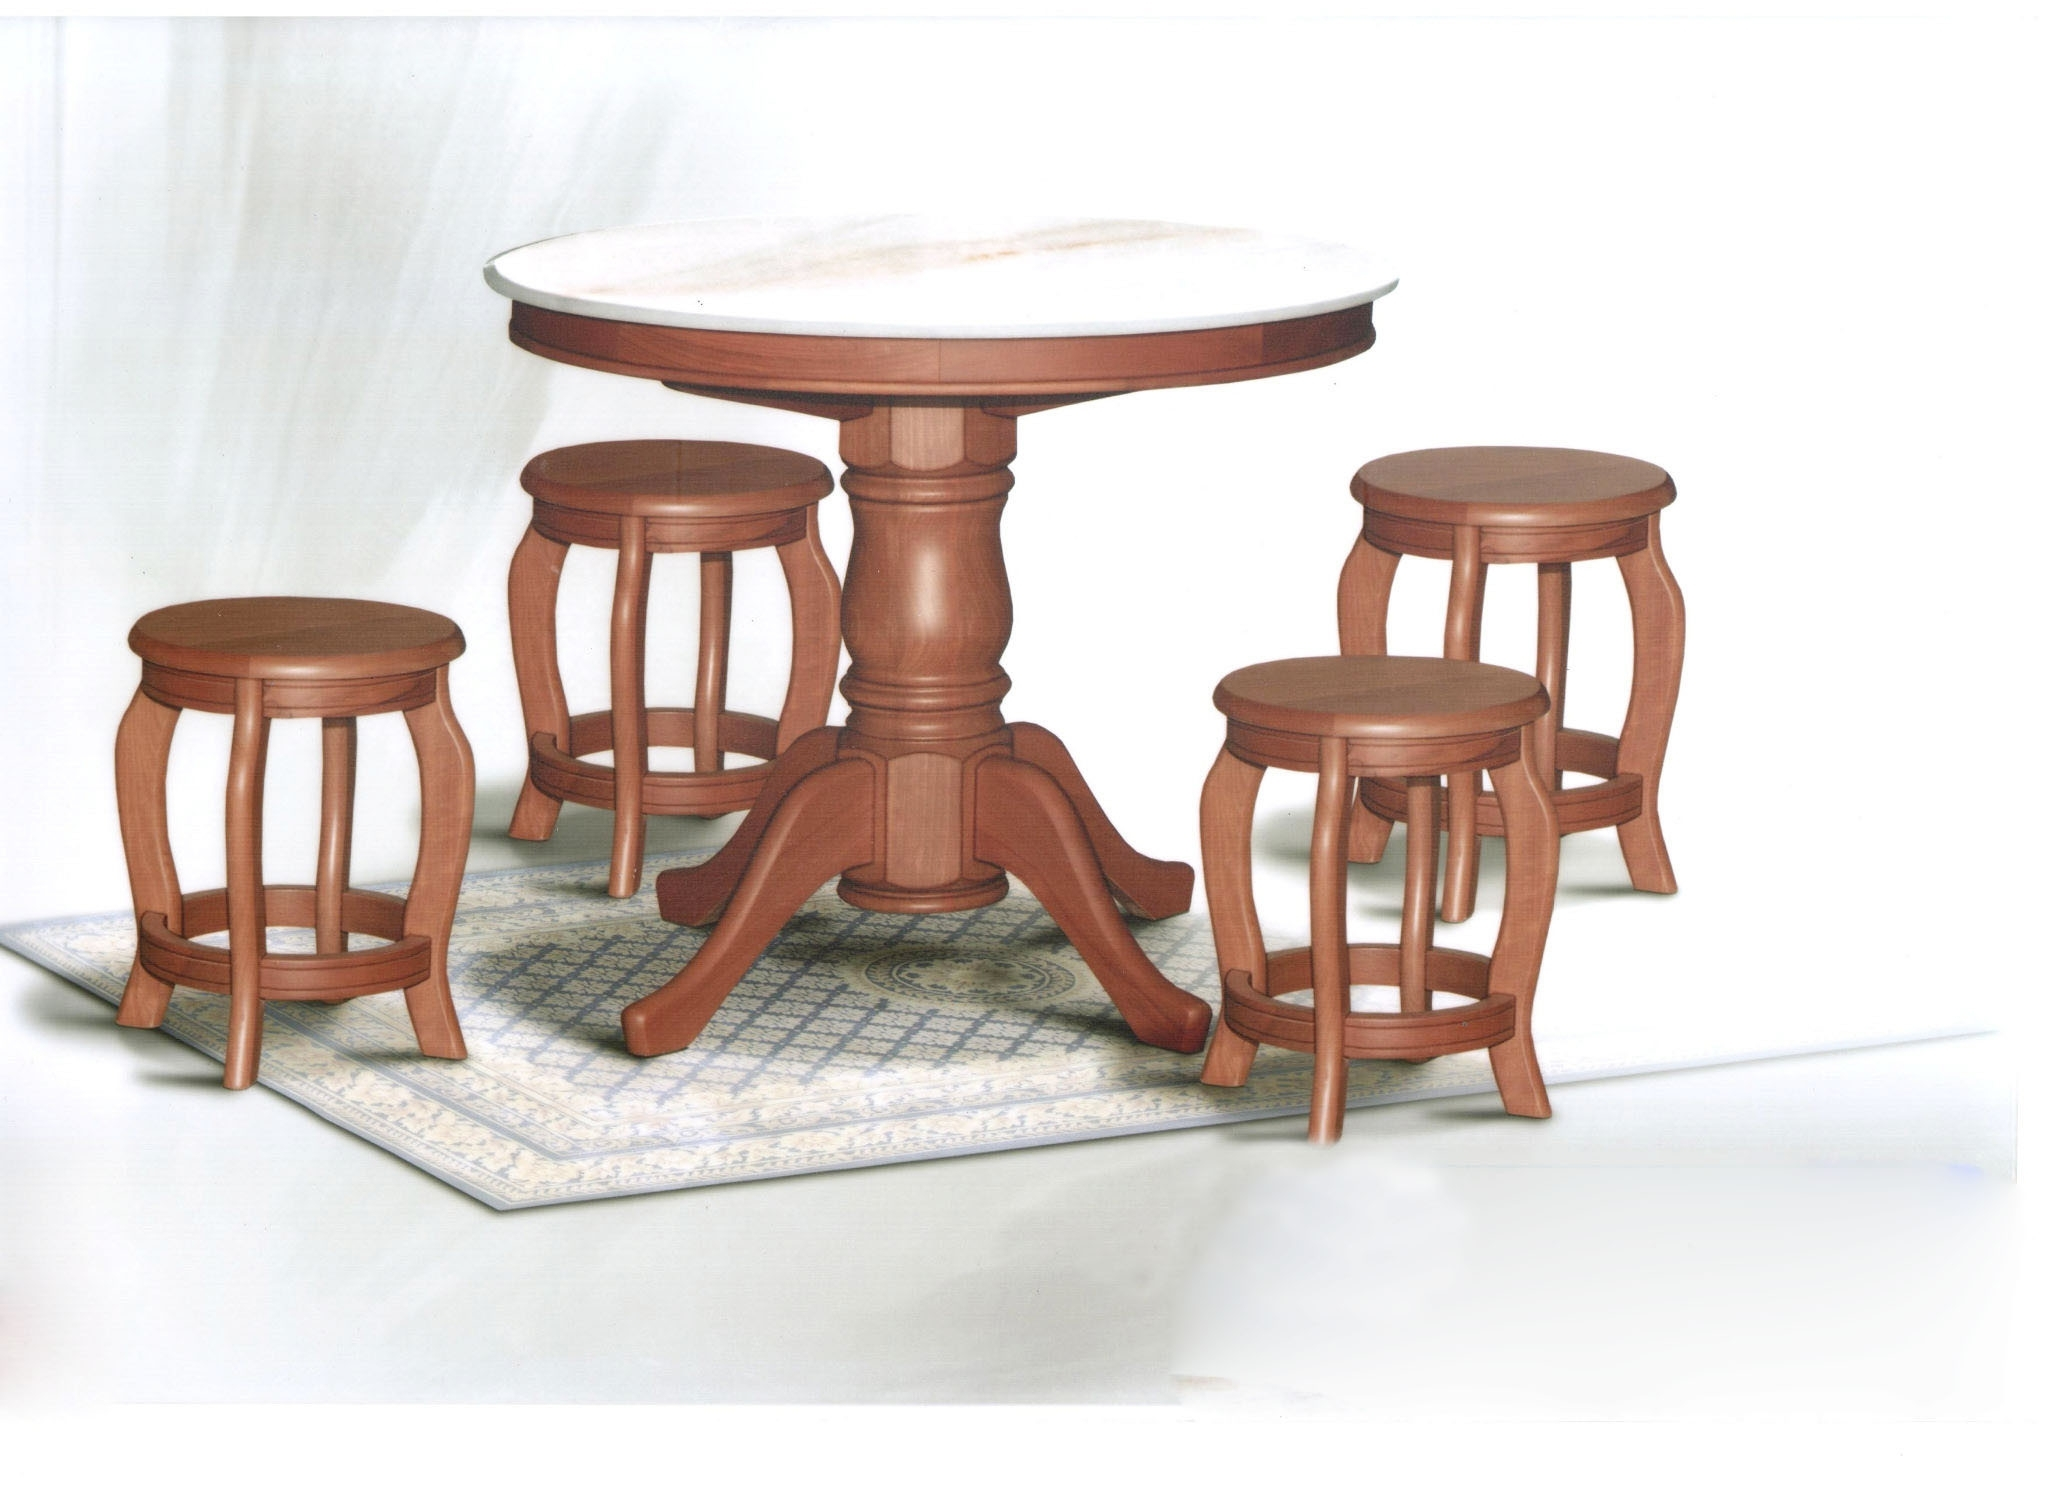 2018 3Ft Dining Tables For Dn788 Round Marble Dining Table (3Ft) + 4 Stools Set (View 2 of 25)